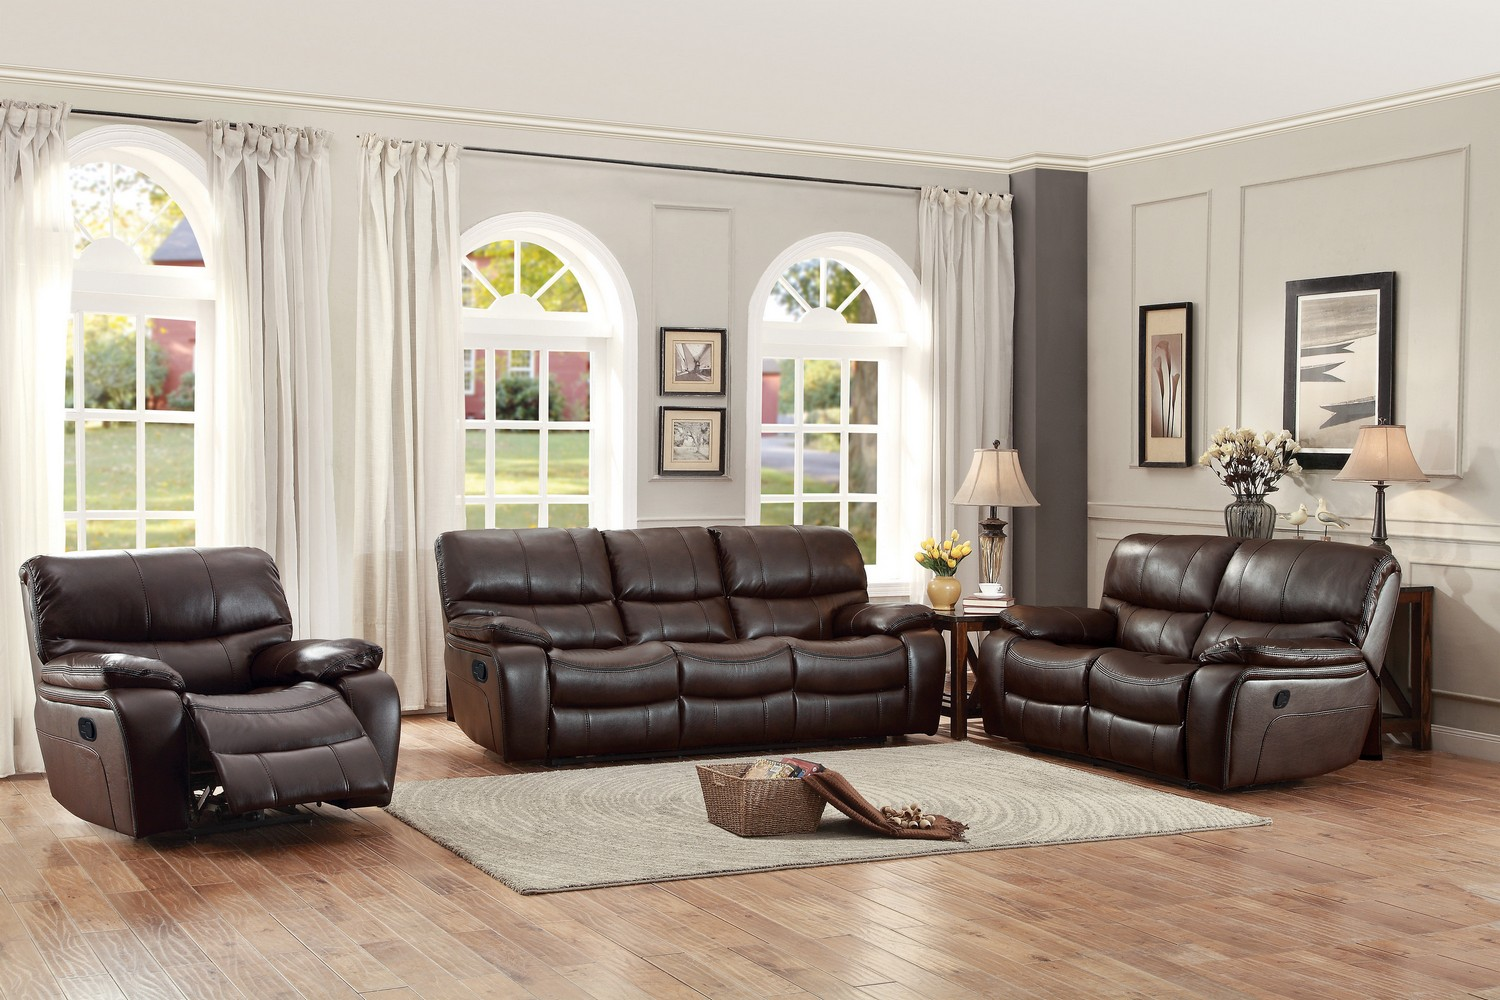 Homelegance Pecos Reclining Sofa Set - Leather Gel Match - Dark Brown